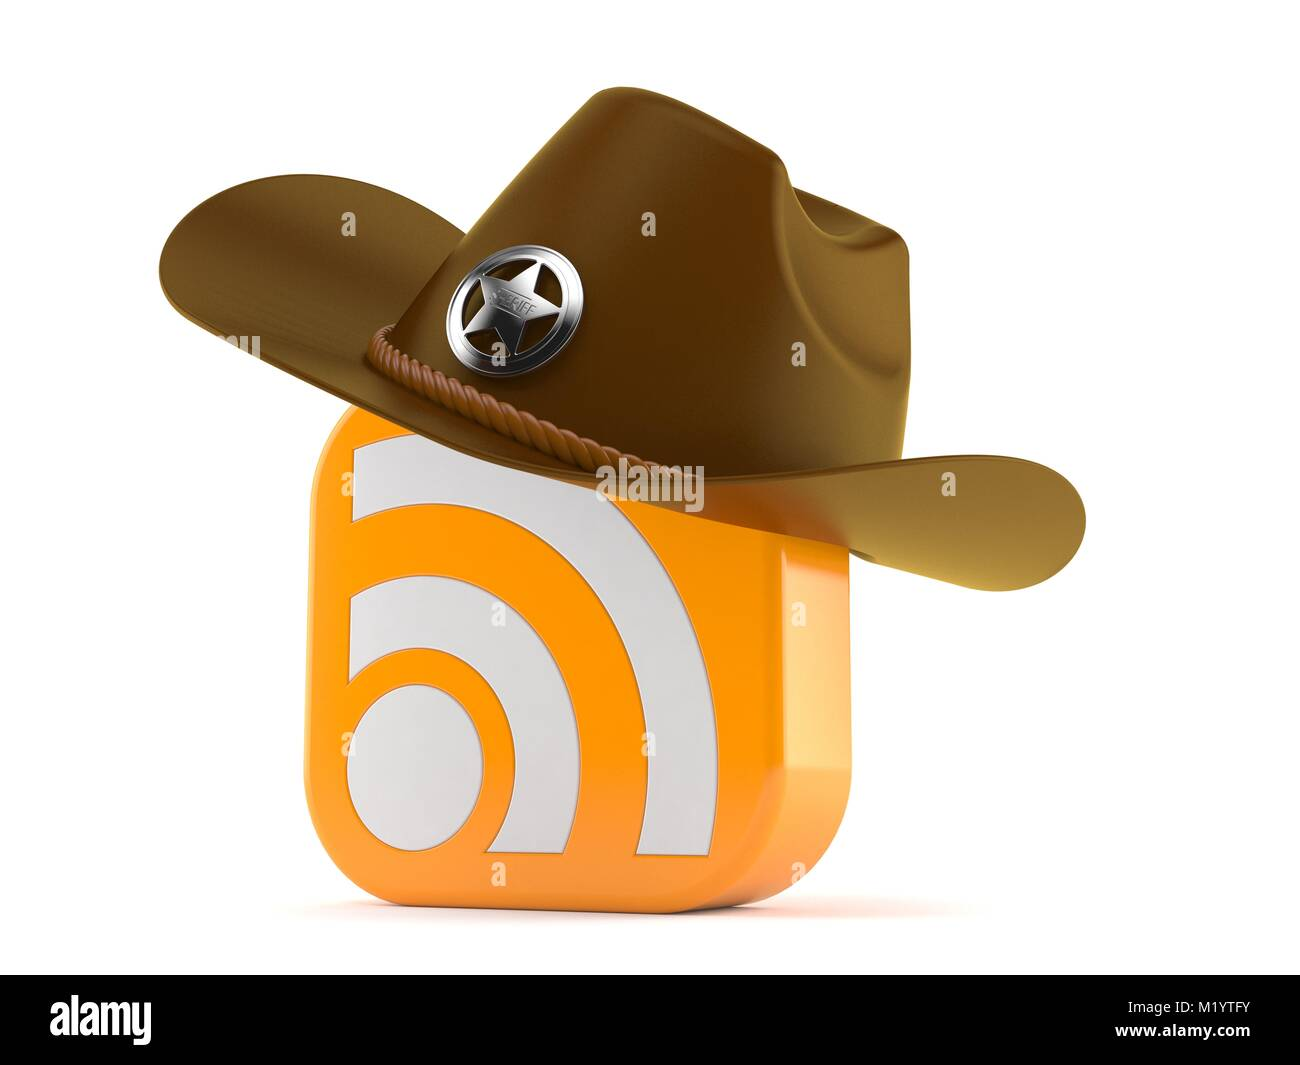 f0d33b0b Sheriff hat with rss icon isolated on white background Stock Photo ...